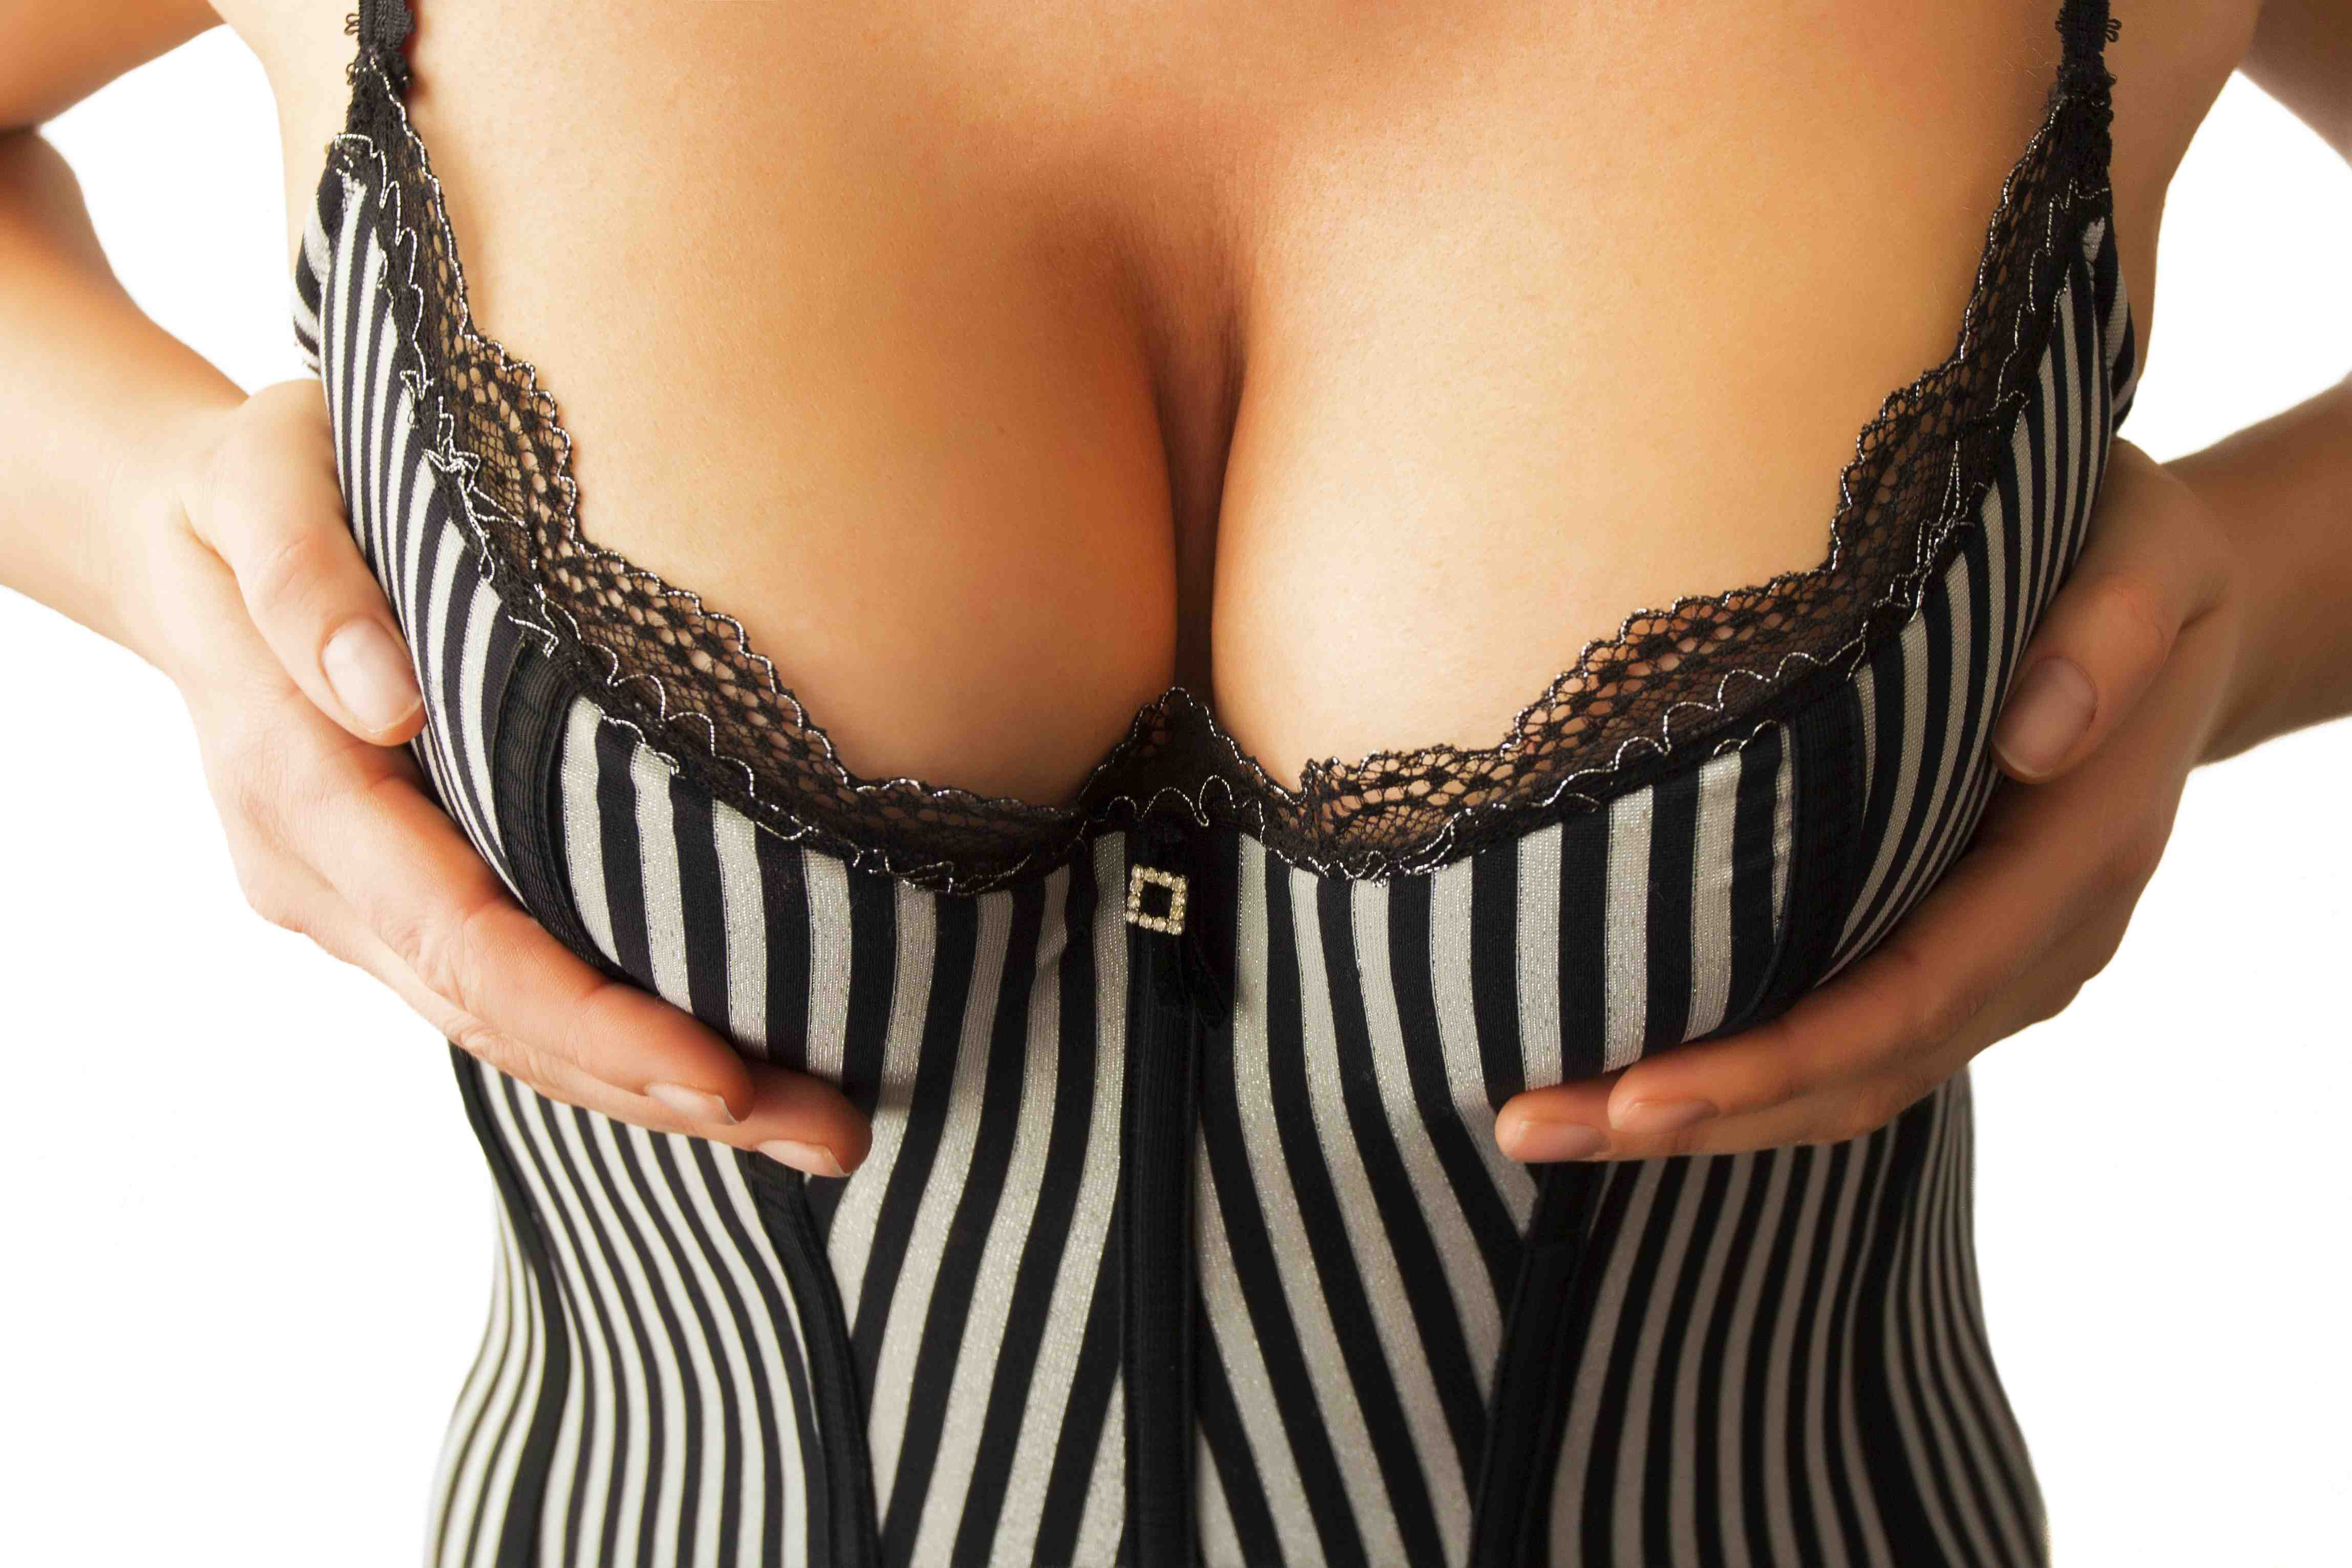 with why breast are men fascinated